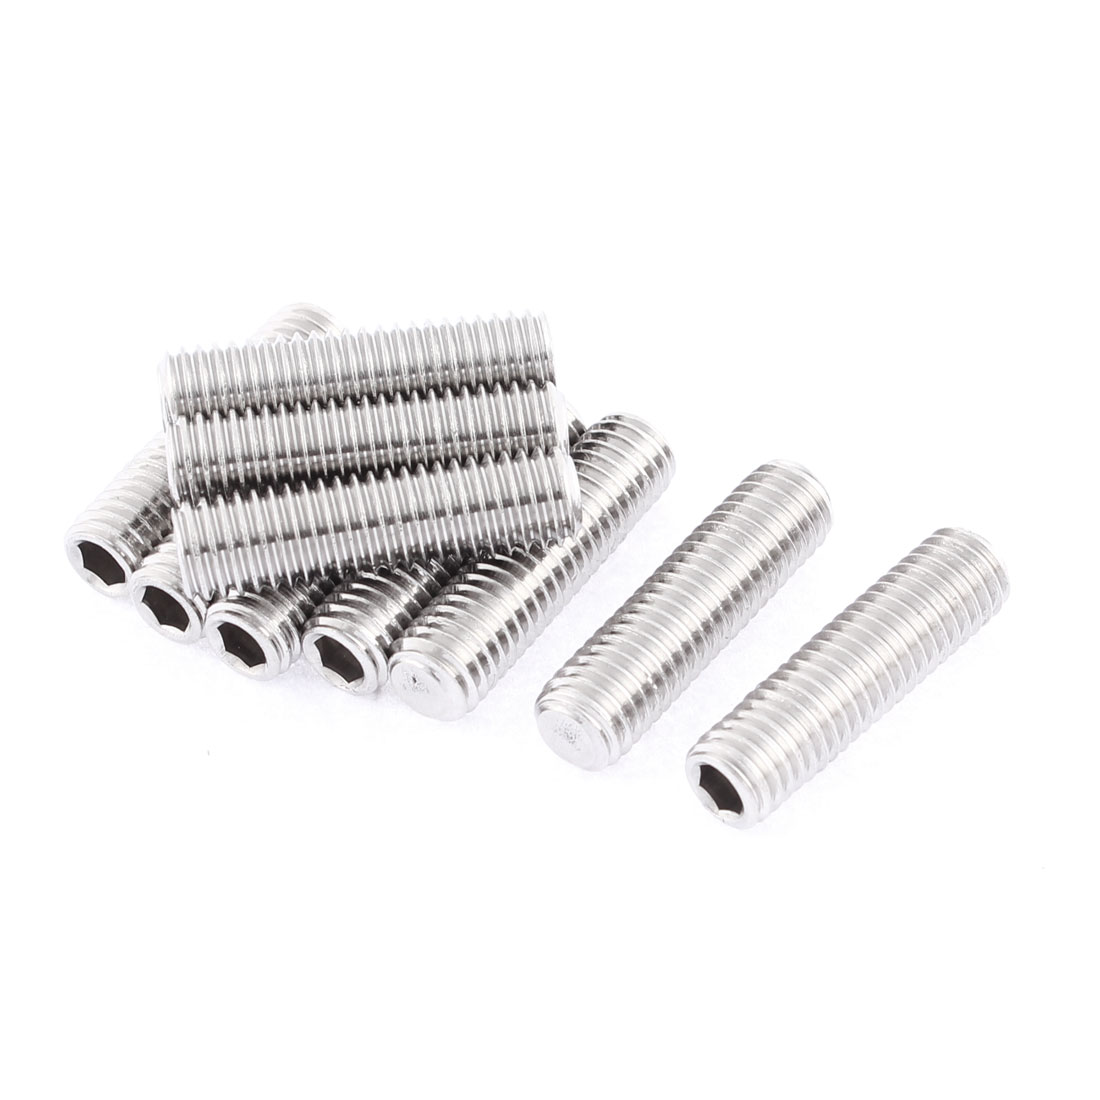 M8x30mm 1.25mm Pitch Stainless Steel Hex Socket Set Flat Point Grub Screws 10pcs